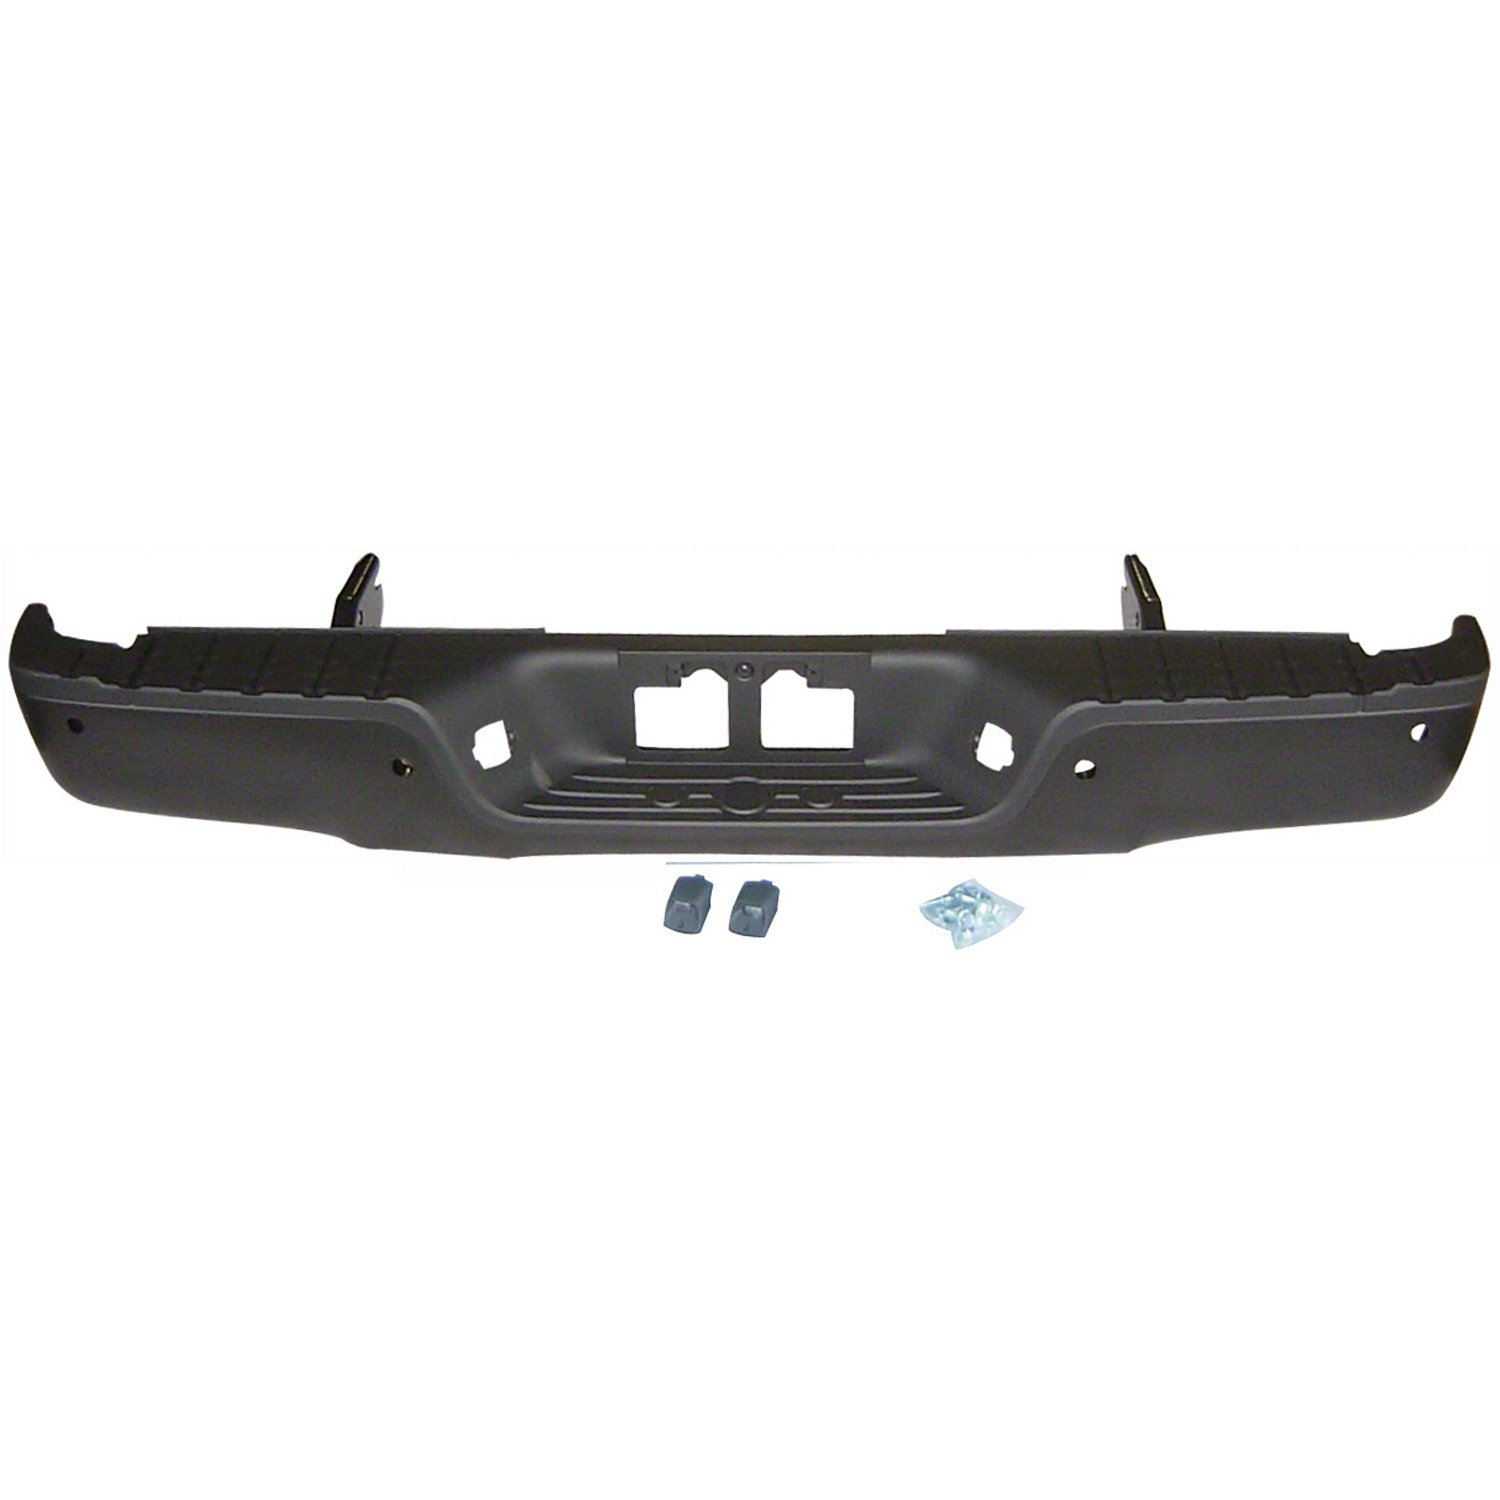 New TO1191101 Rear Black Bumper Face Bar Step Pad for Toyota Tundra 2007-2013